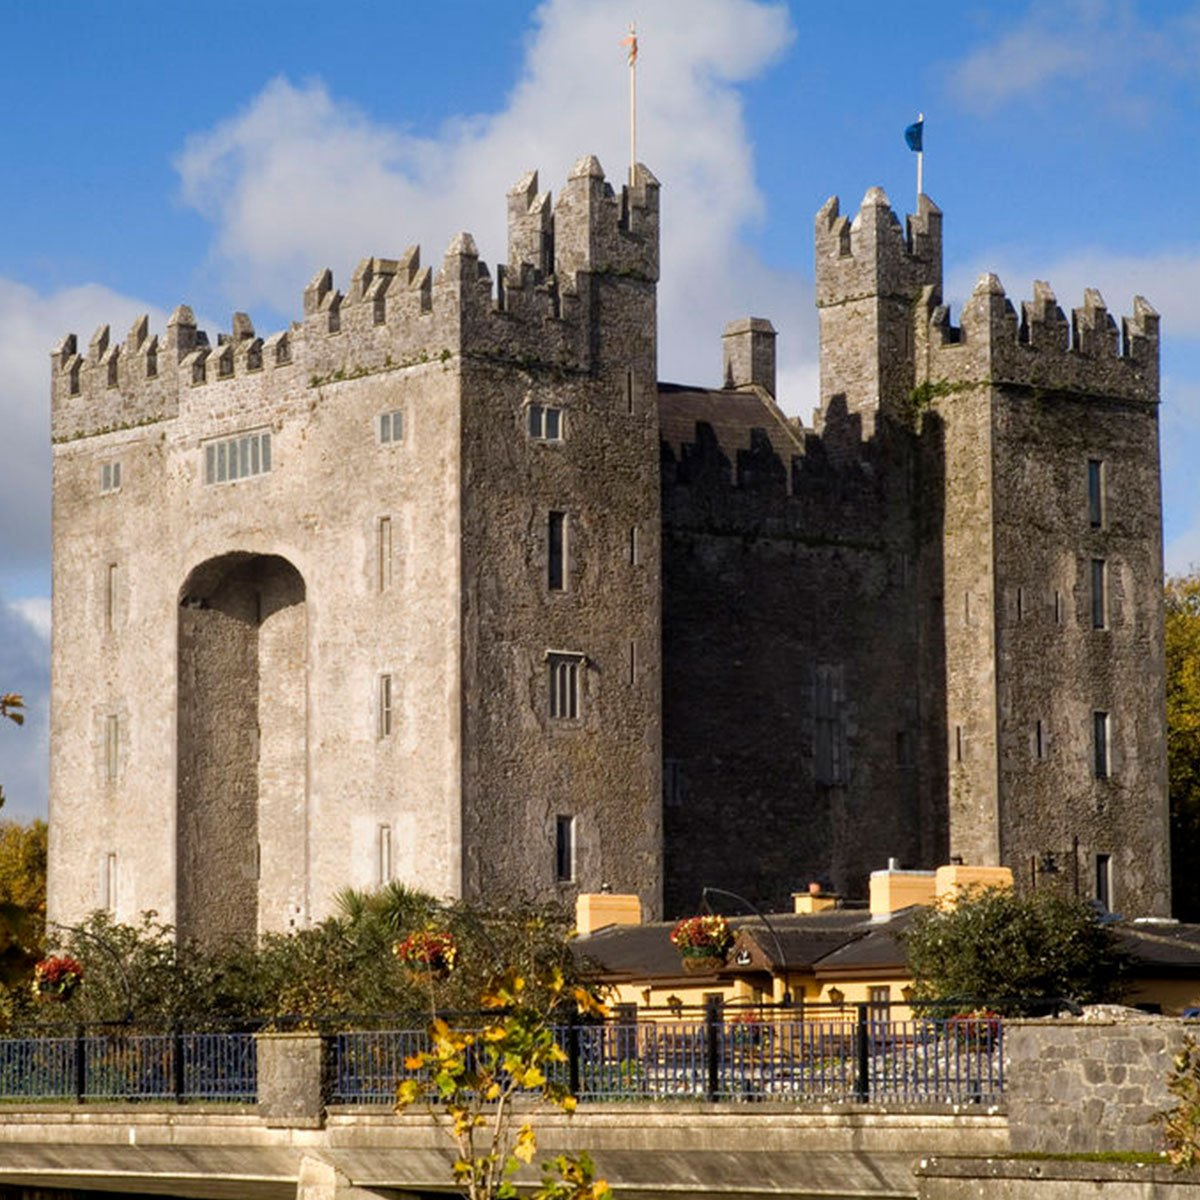 Air transat on twitter discover ireland and make sure you do not air transat on twitter discover ireland and make sure you do not miss anything by taking part in our guided tour visit dublin county kerry and the cork solutioingenieria Choice Image